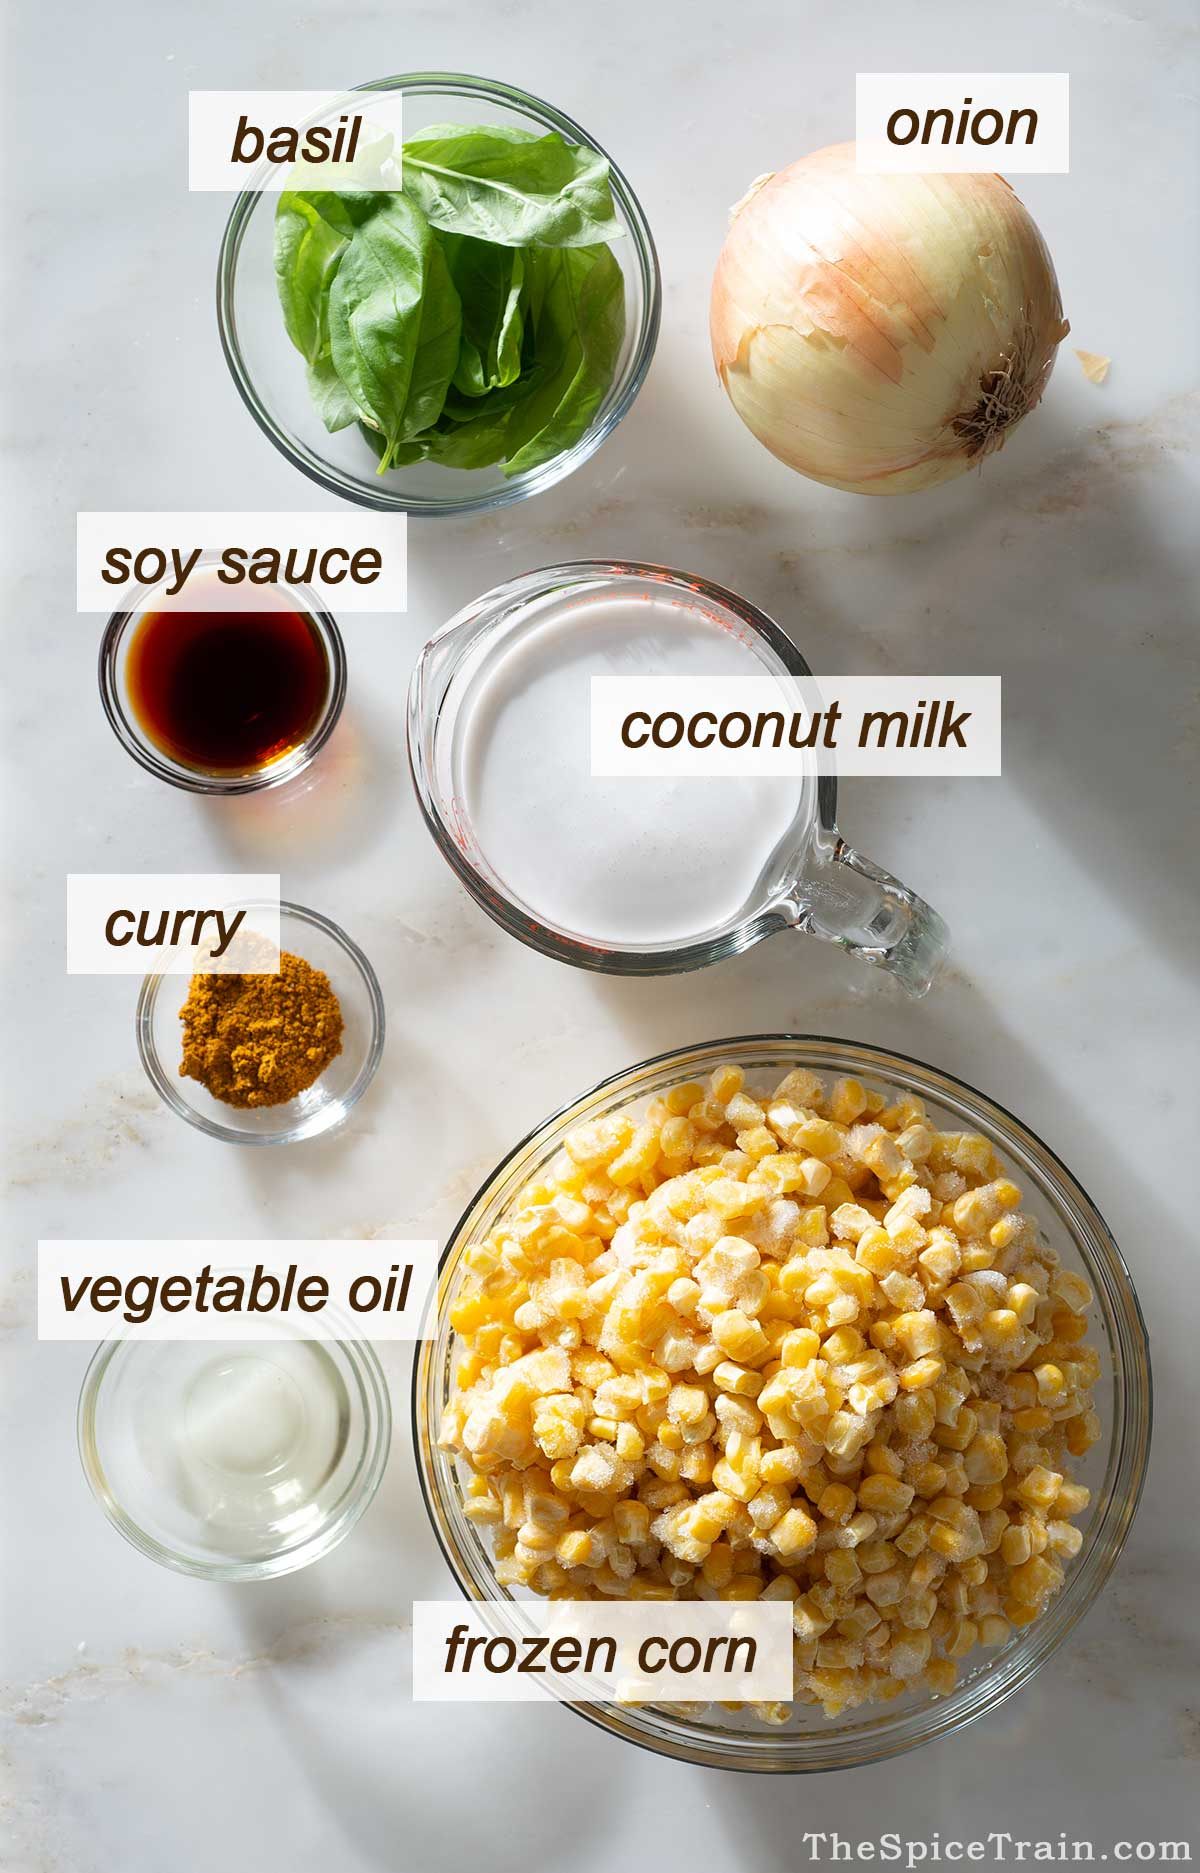 Curried corn ingredients on a kitchen counter.